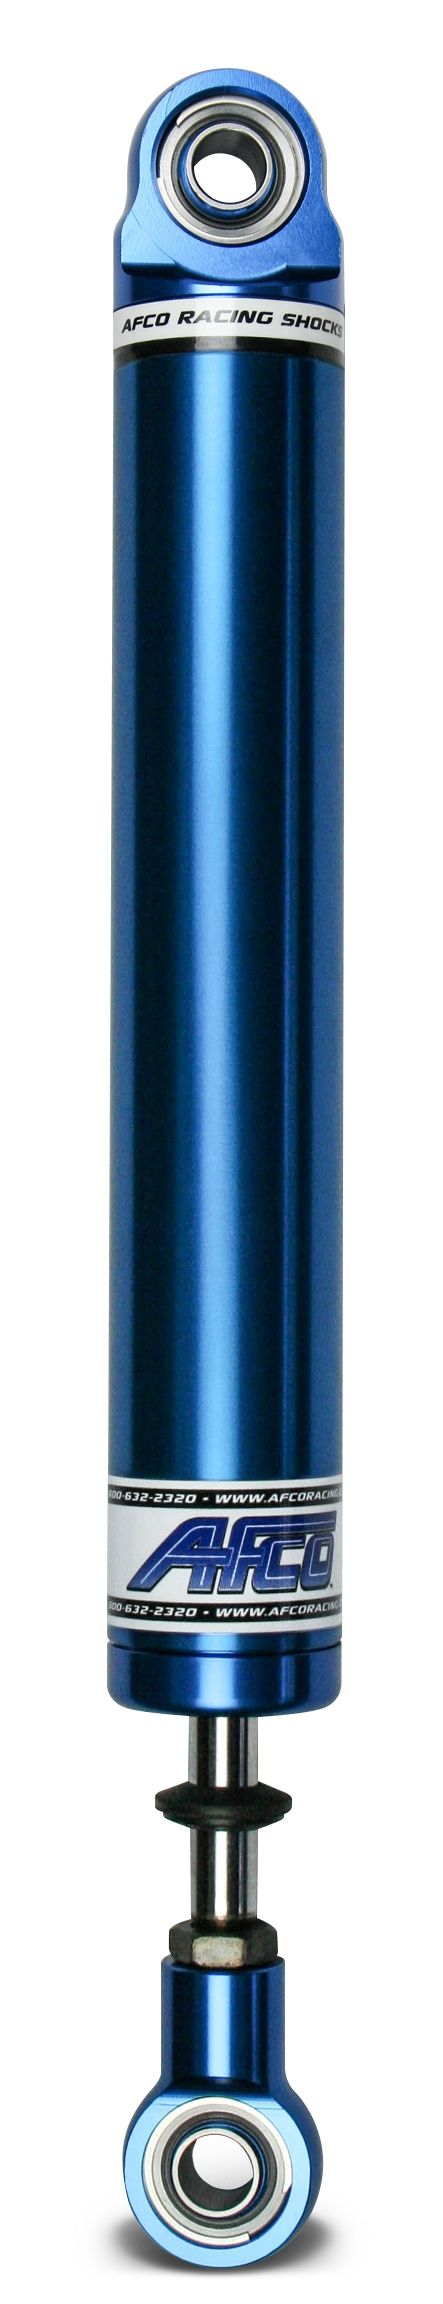 Aluminum Shock Twin Tube 16 Series Small Body 6 Inch Comp 3/Reb 1 Smooth